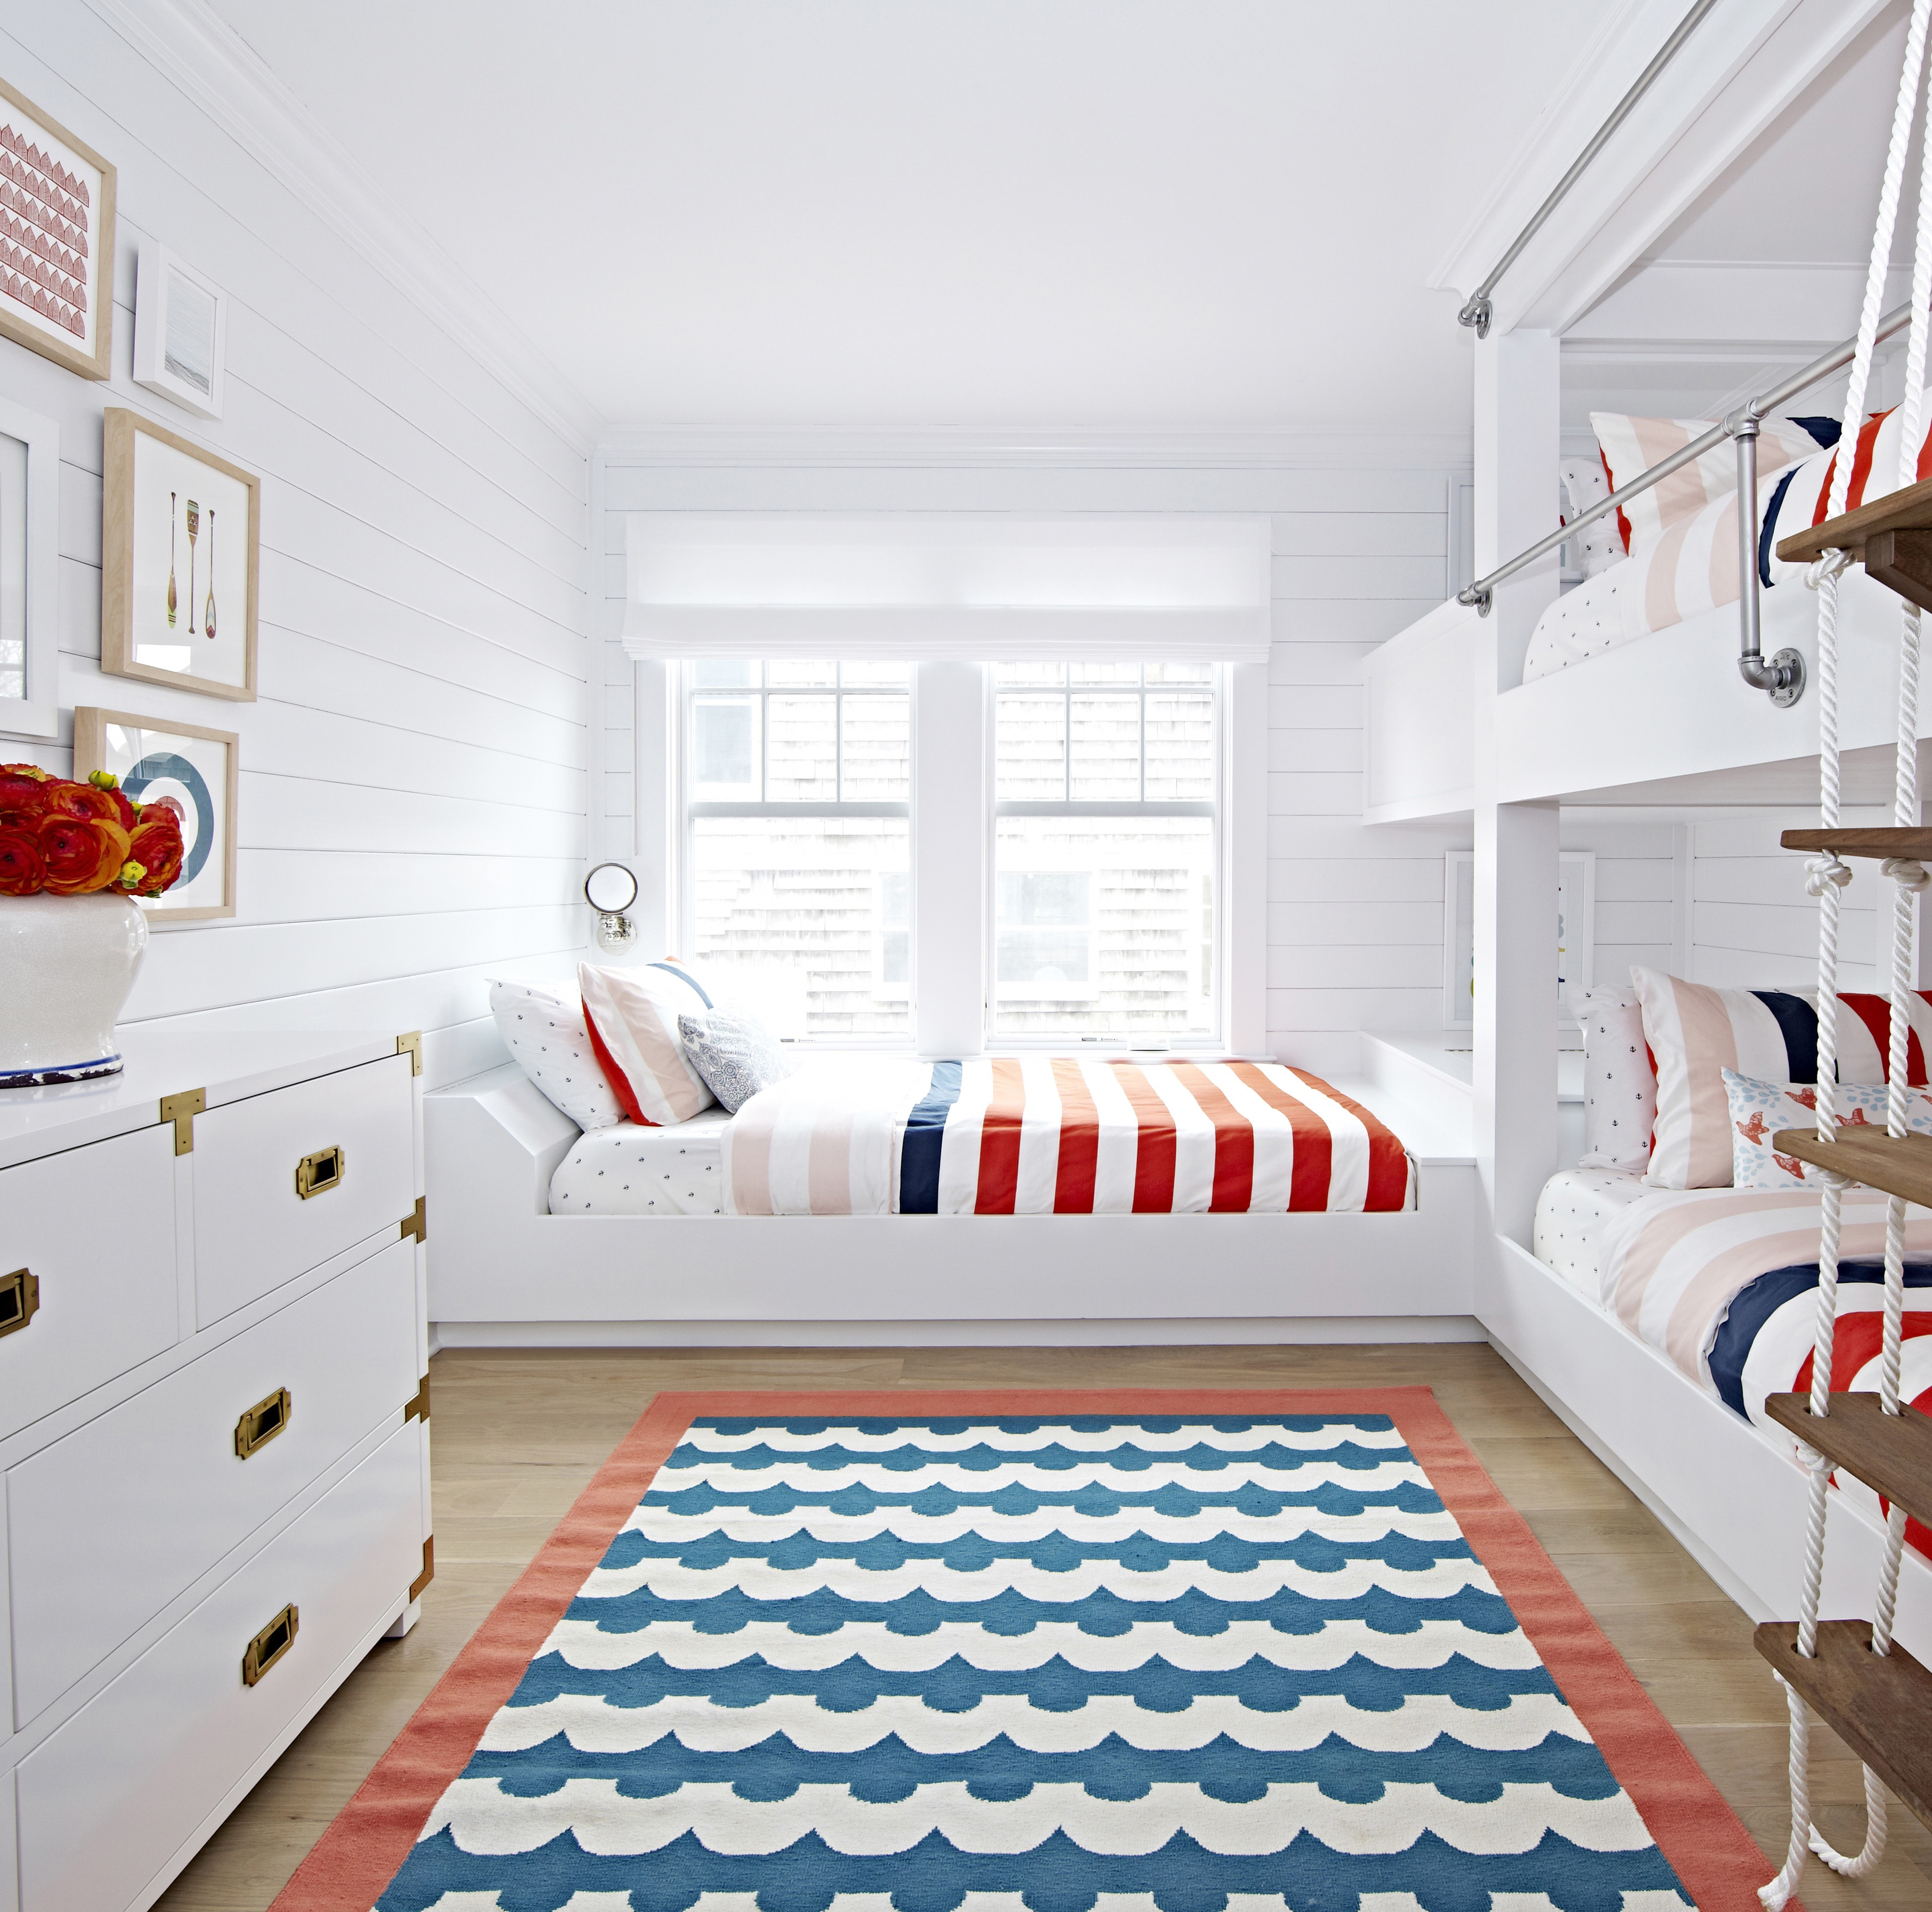 Children Apartment Bedroom Decor In Modern Design (Image 8 of 35)